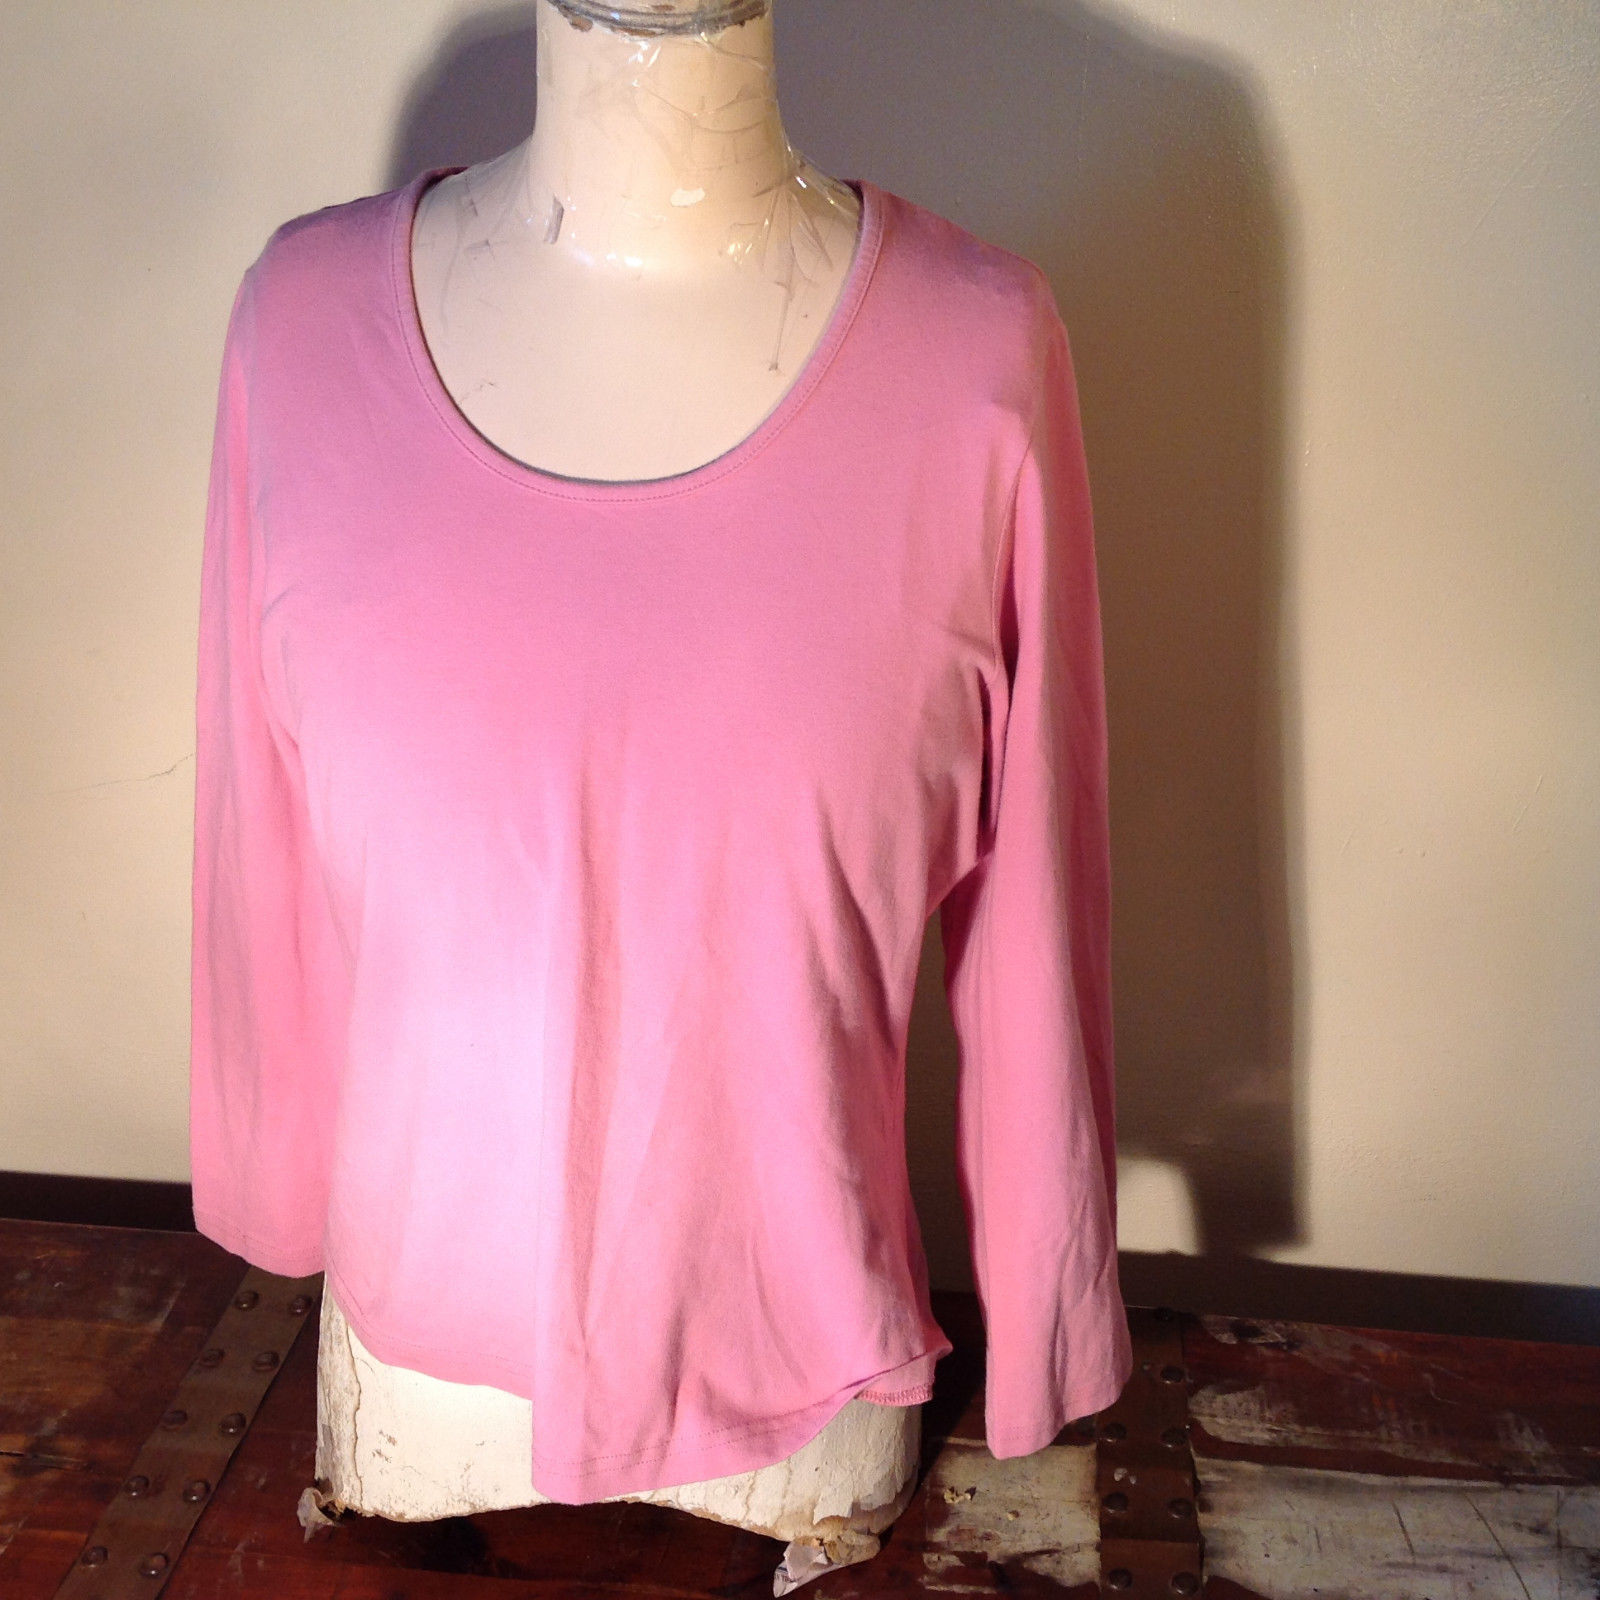 Light Dusty Pink Plain Long Sleeve Top Stretchy Mercer and Madison Size XL